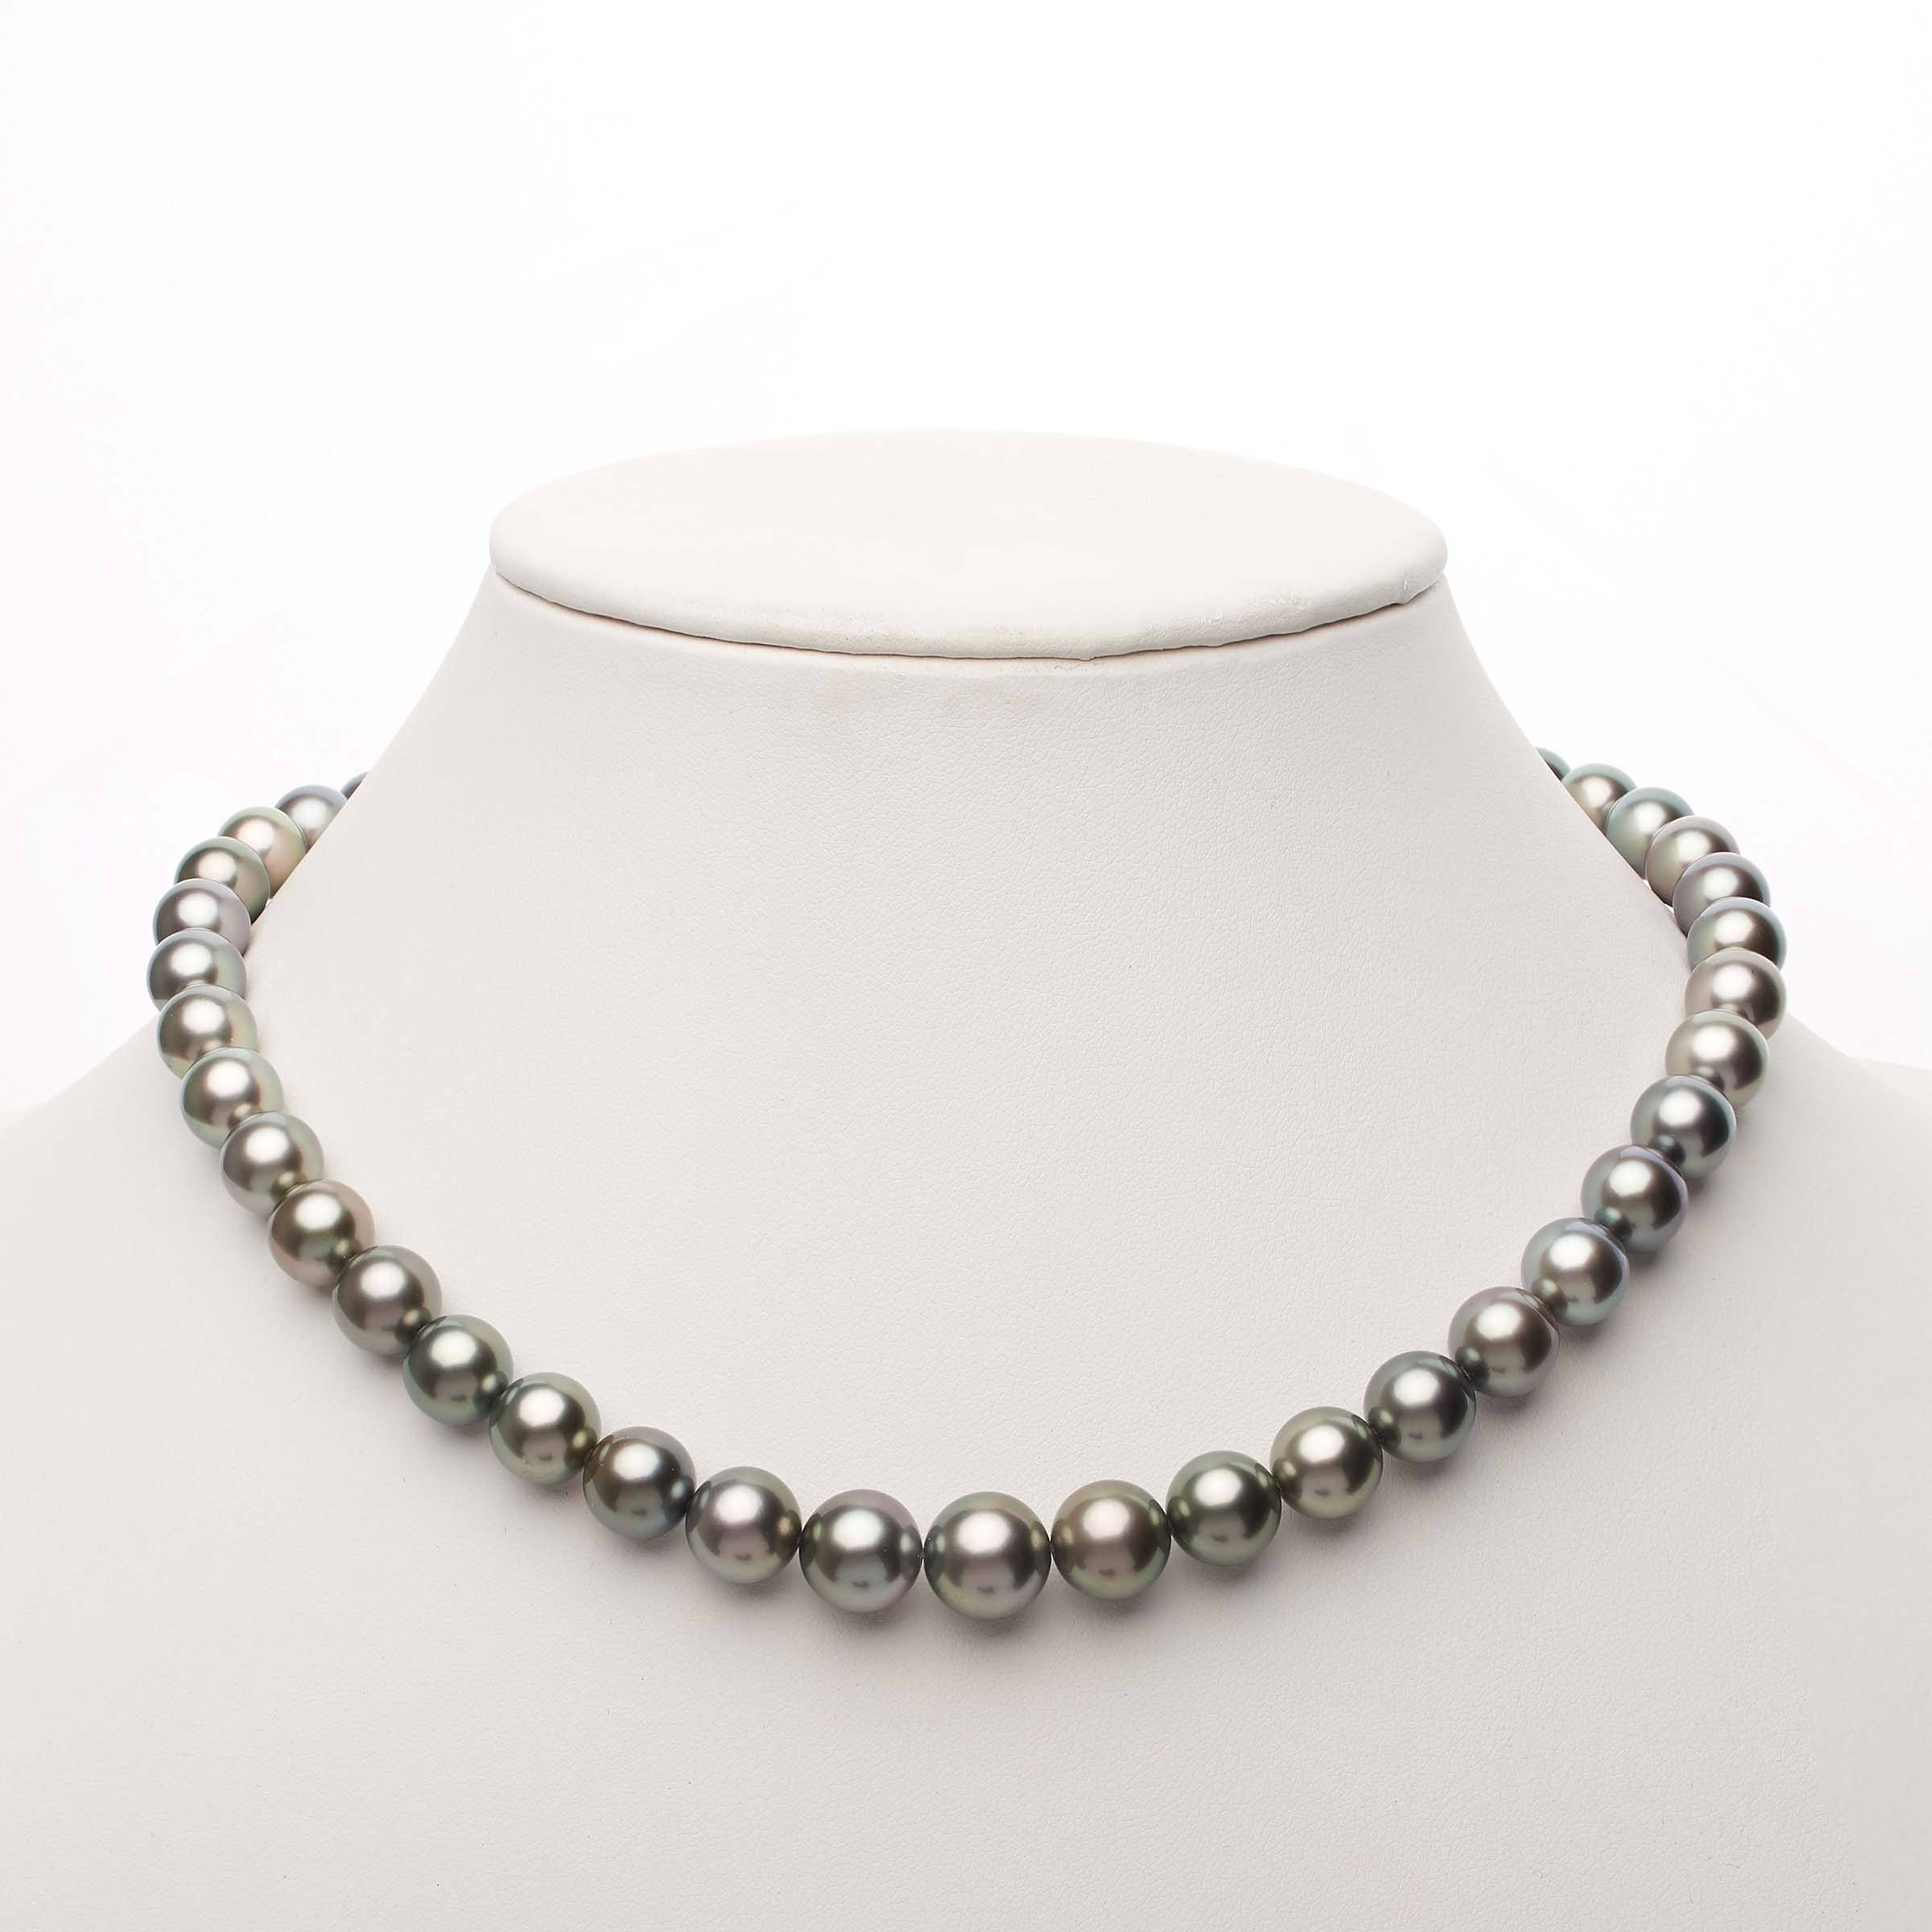 18-inch 9.0-11.1 mm AAA Round Tahitian Pearl Necklace